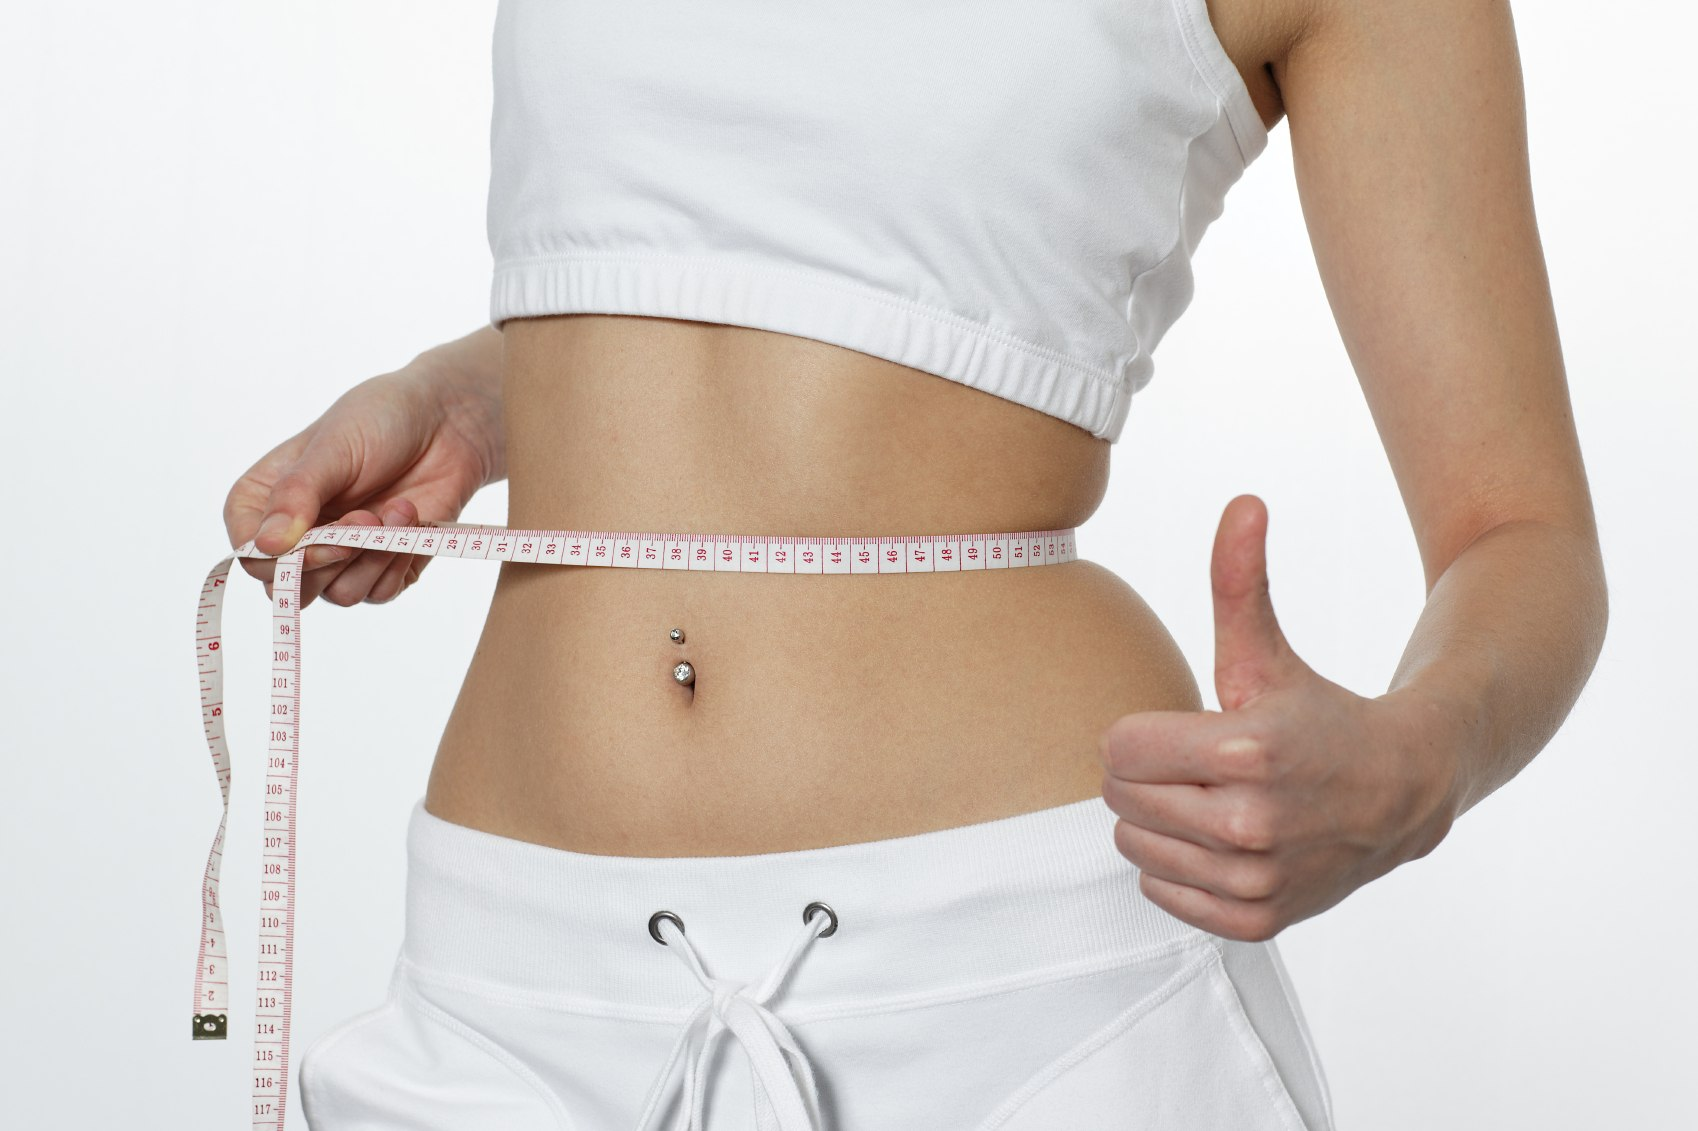 iStock_000015890356Medium_weight-loss